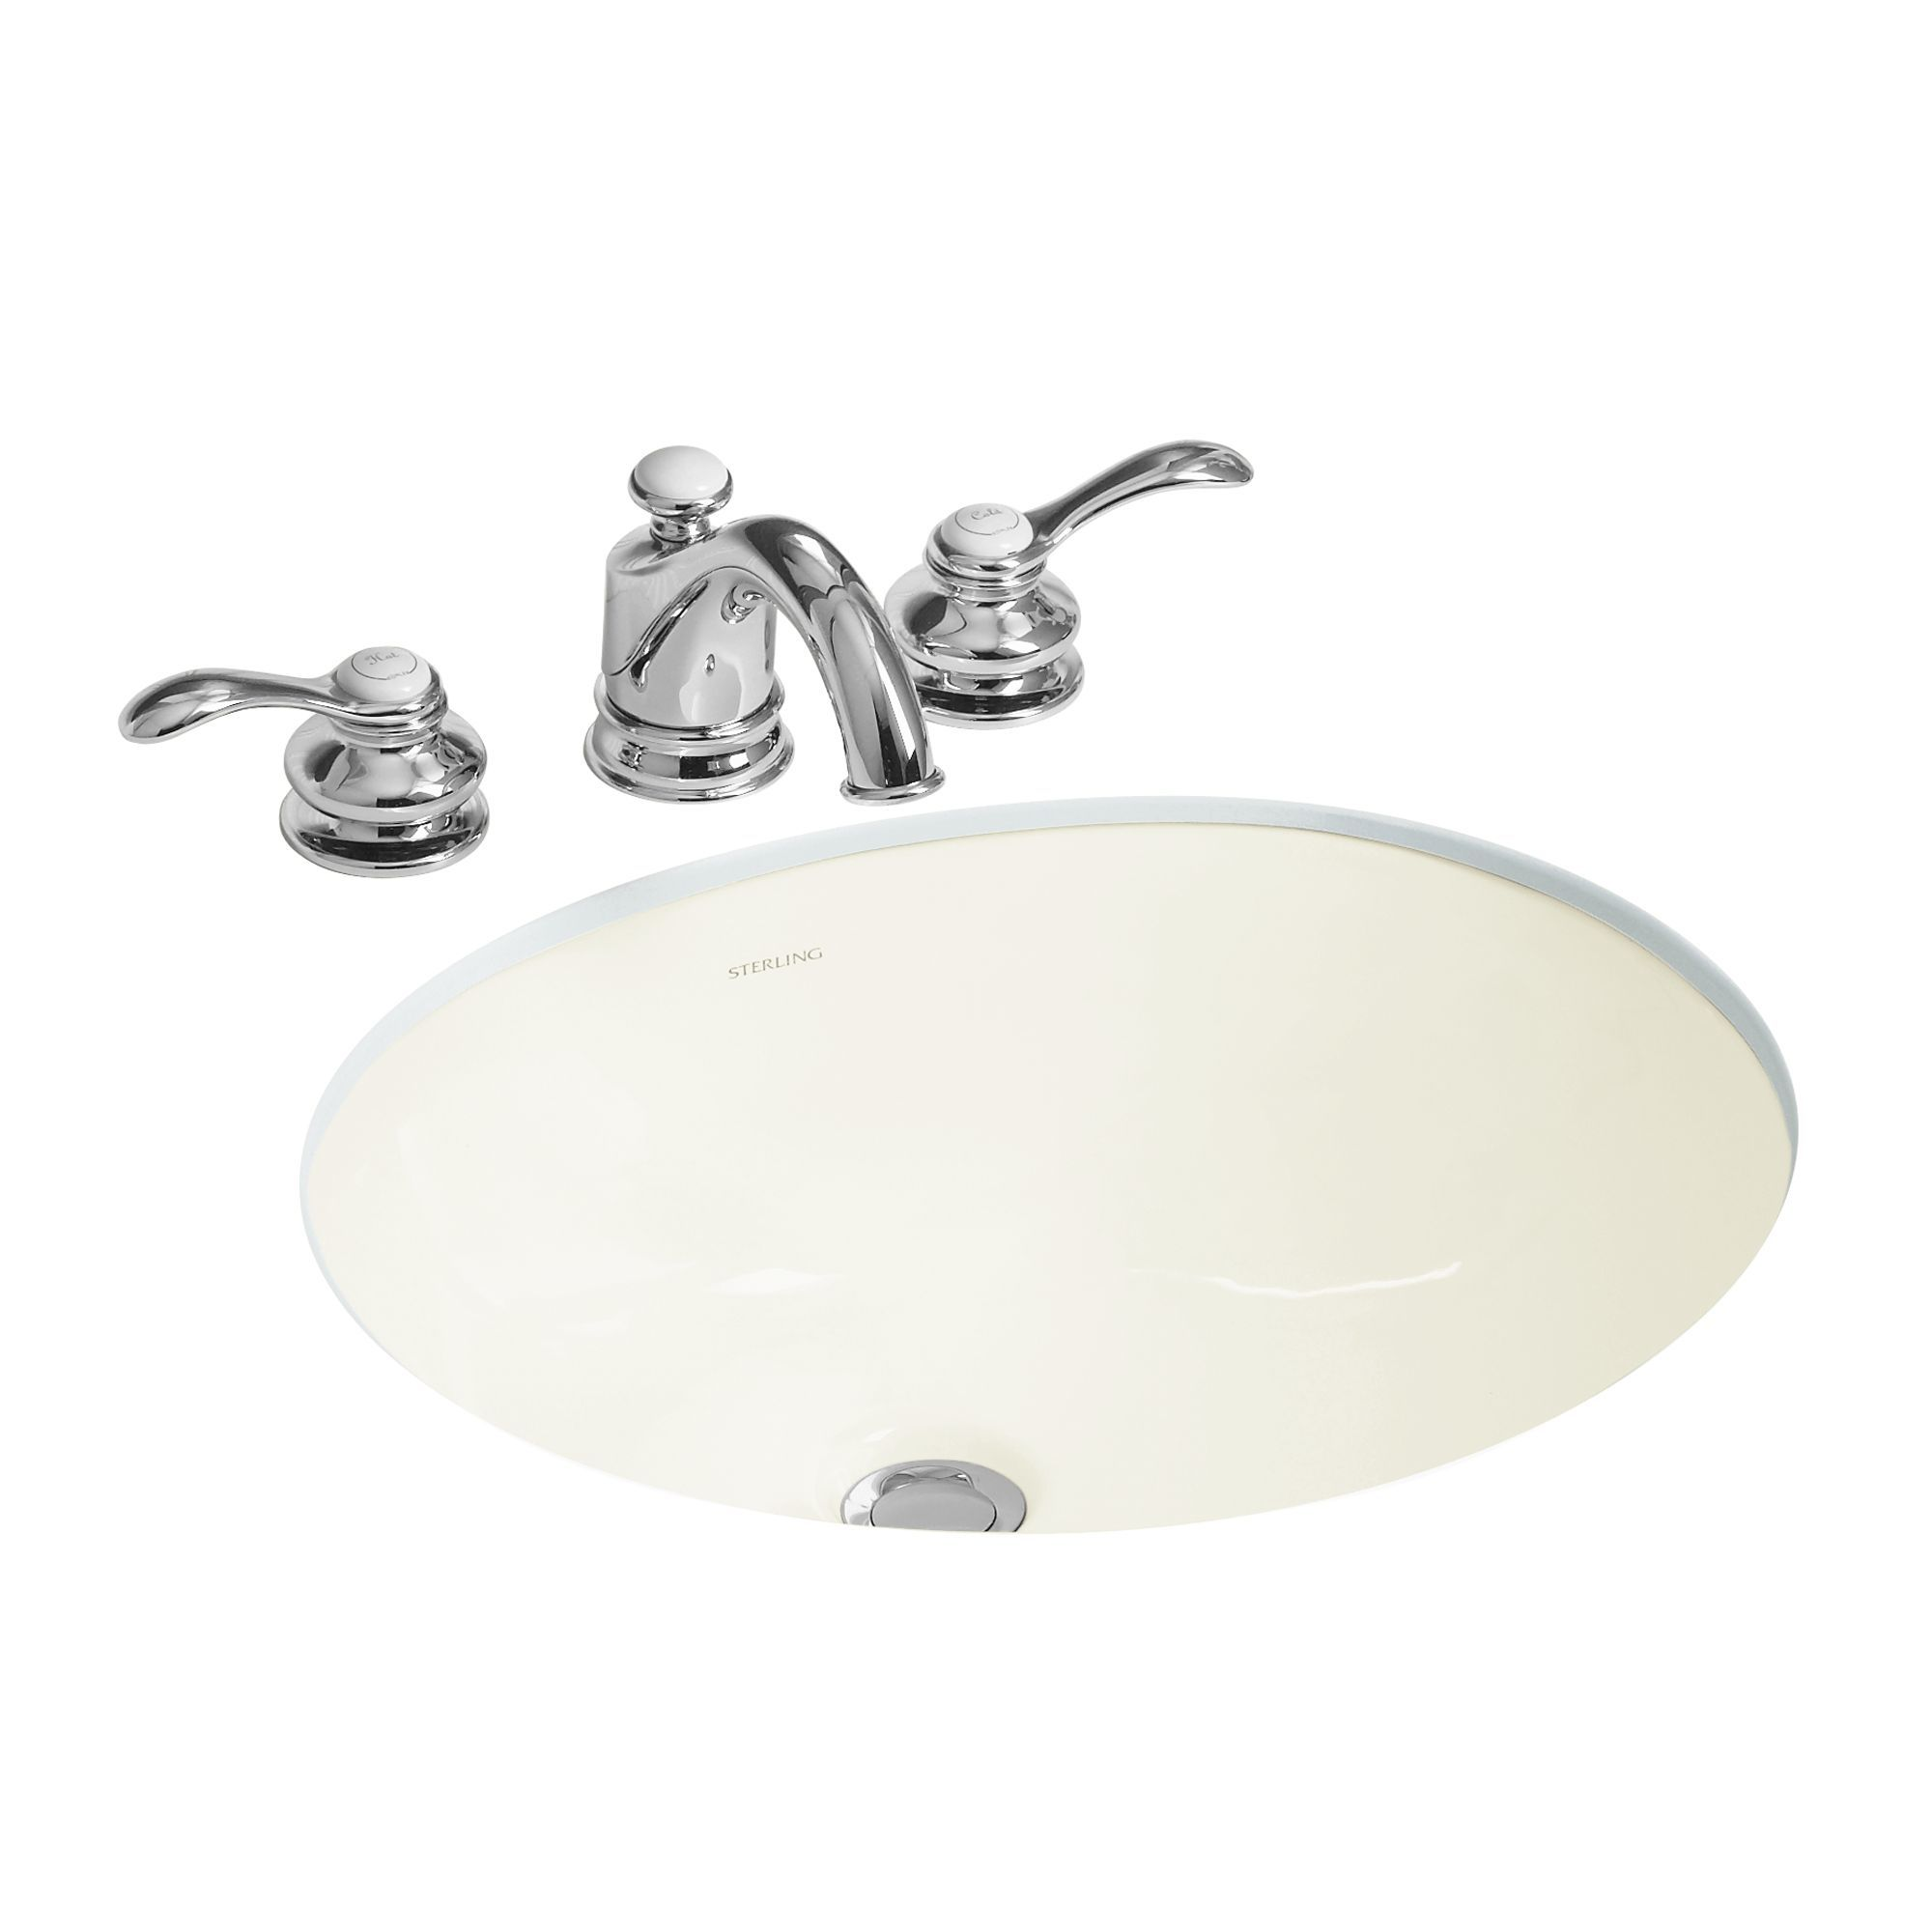 "Sterling 442040-0 White Wescott 17"" Undermount Bathroom Sink And Overflow - Faucet.com"